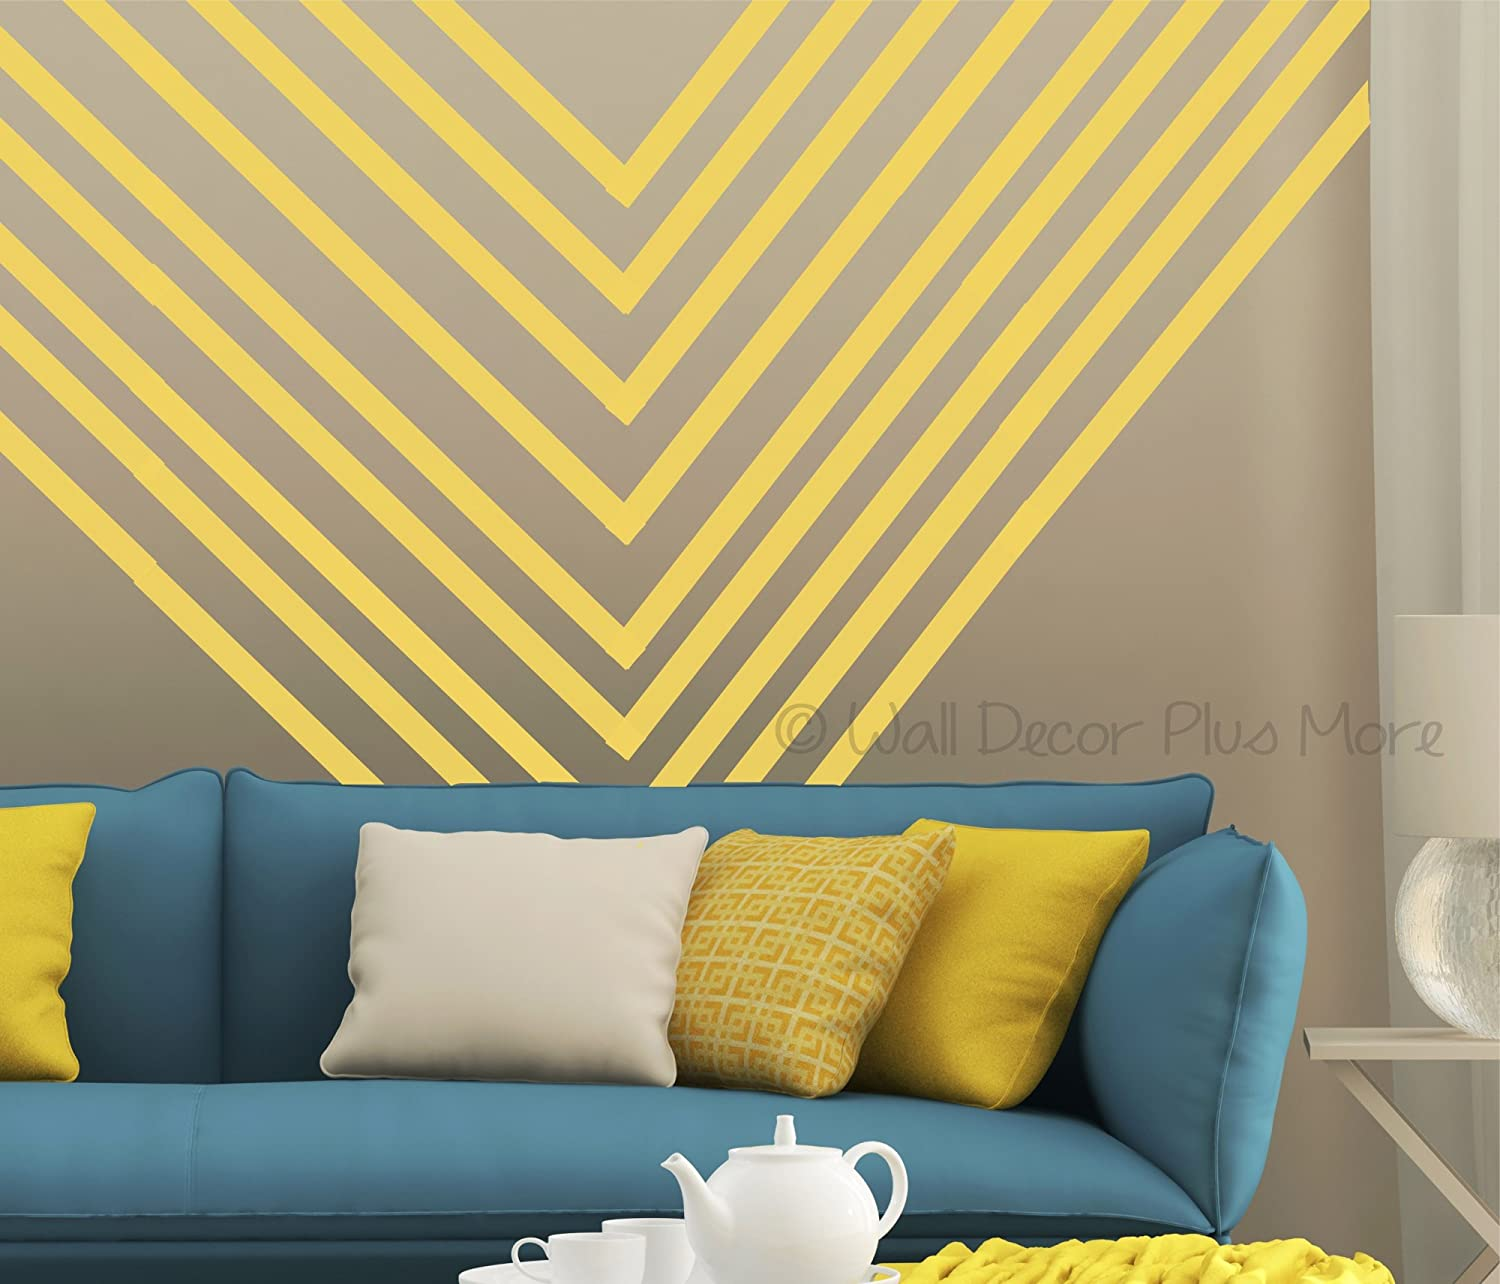 Amazon.com: Wall Decor Sticker Stripe 1\